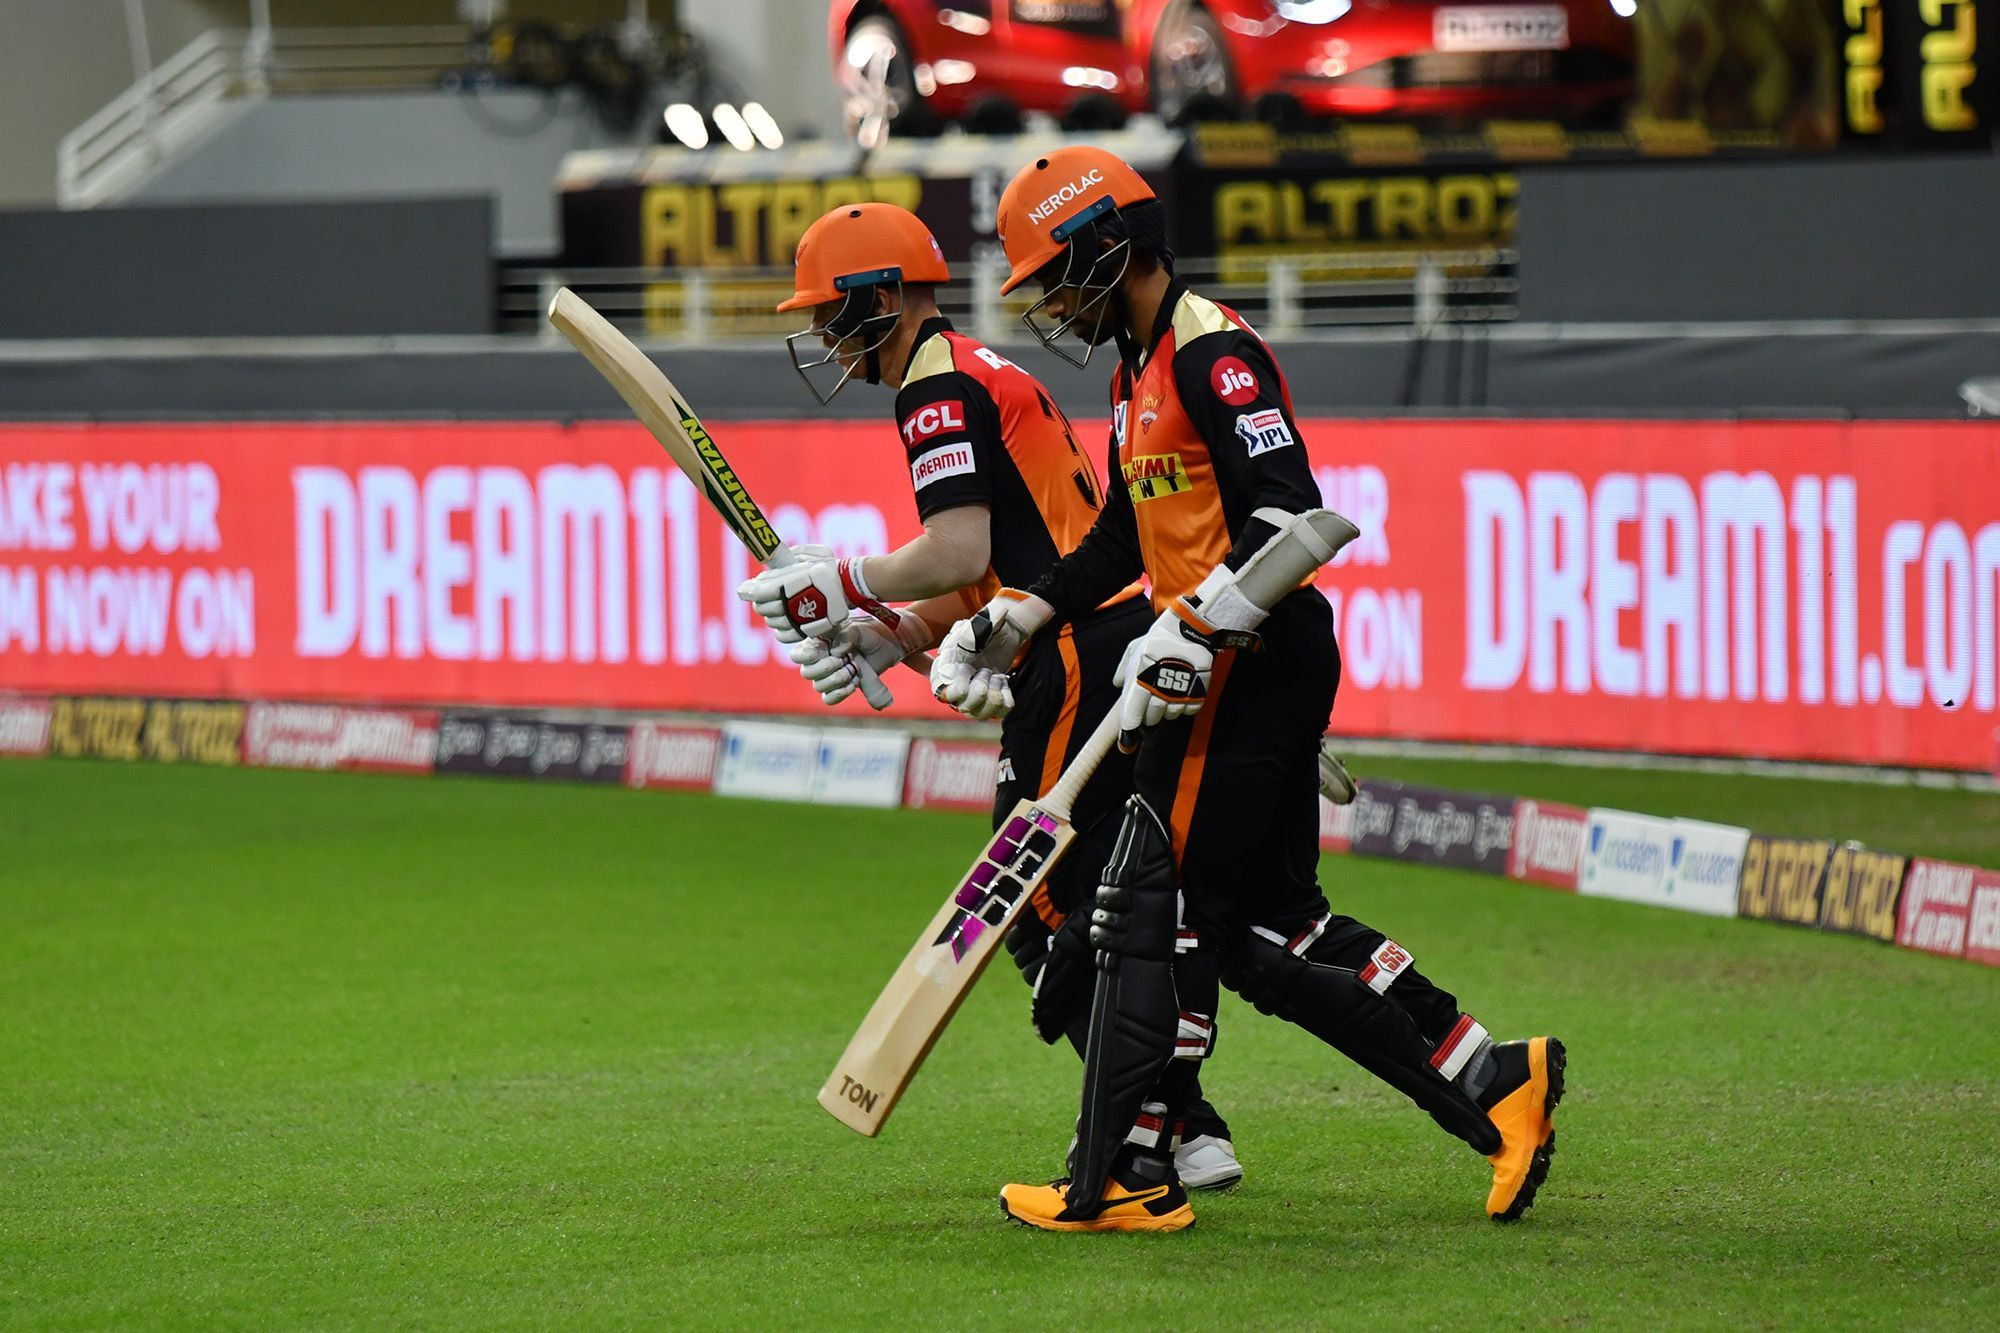 Warner and Saha have gelled well at the top for SRH | BCCI/IPL